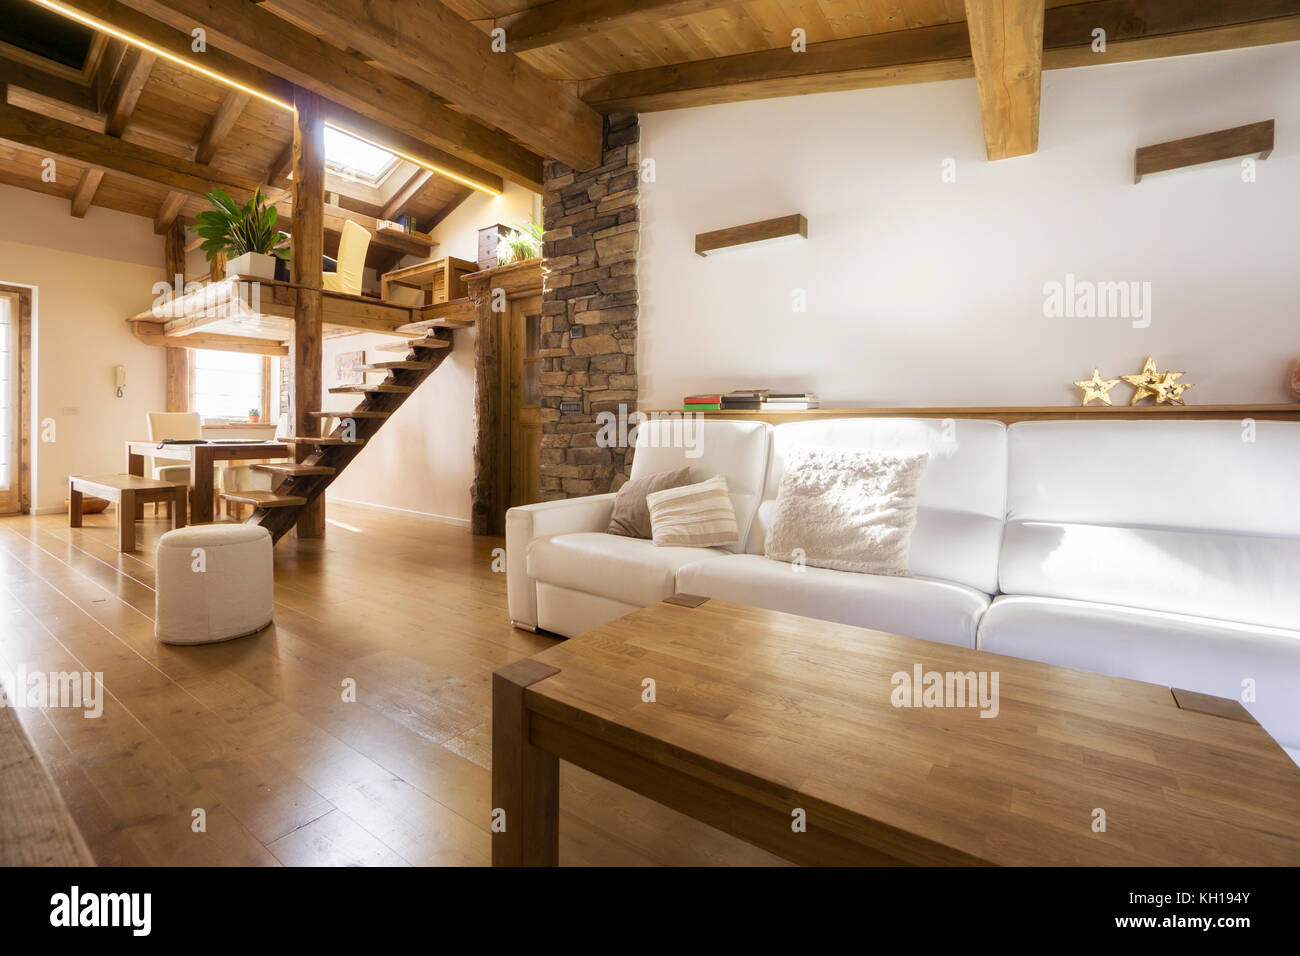 chalet style modern flat in wood - Stock Image